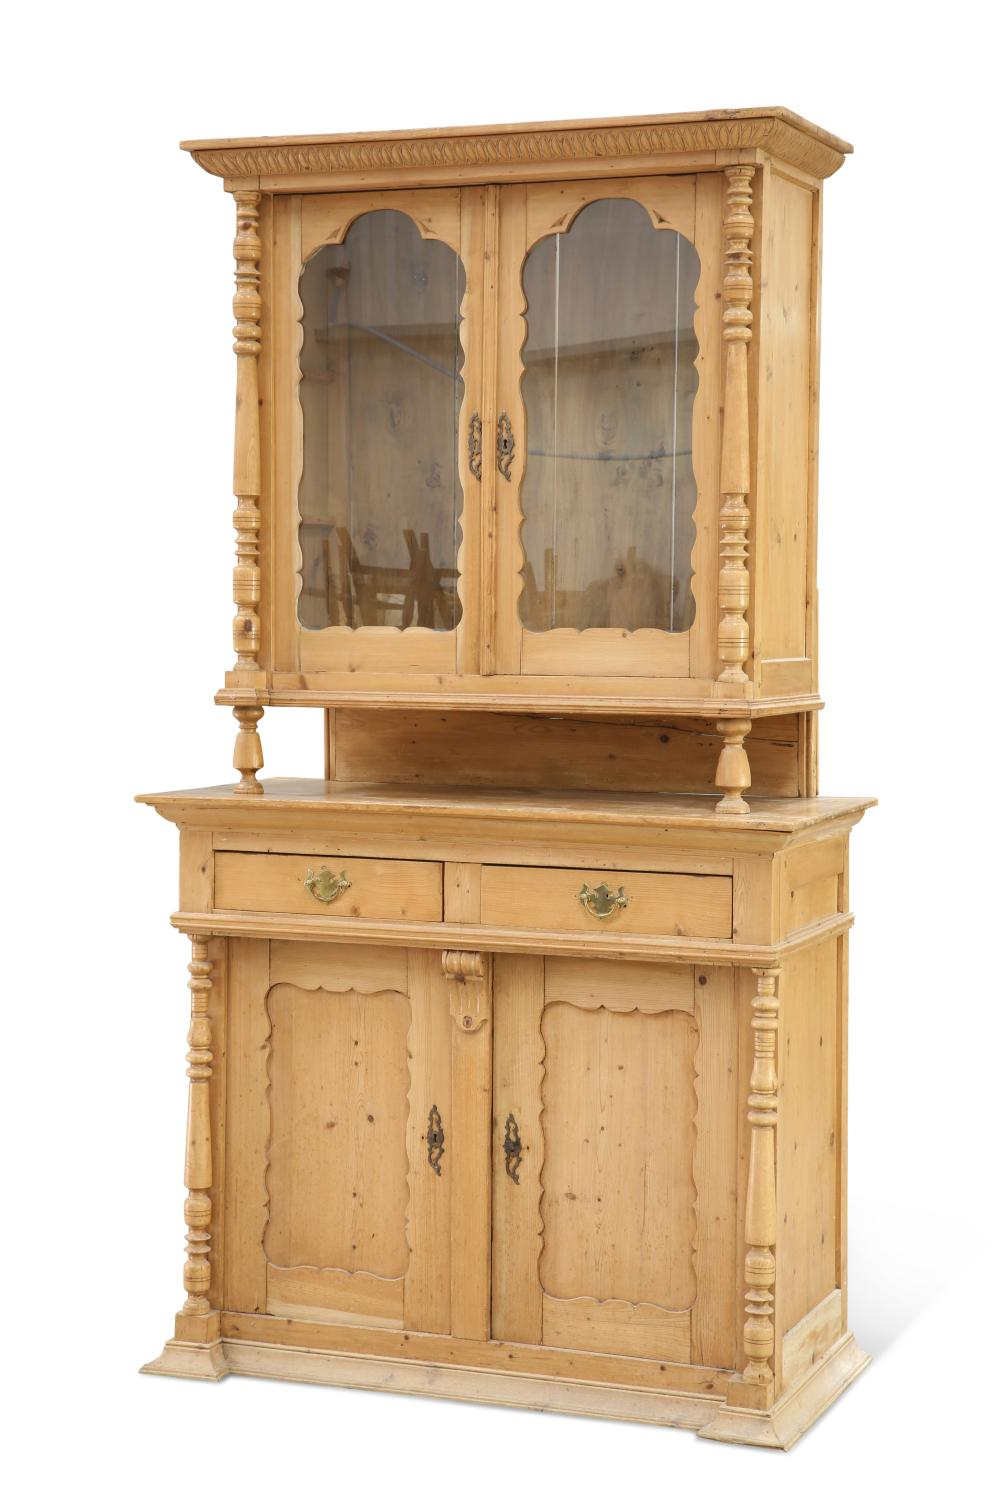 A SWISS PINE DRESSER, 19TH CENTURY, the upper section with a pair of glazed